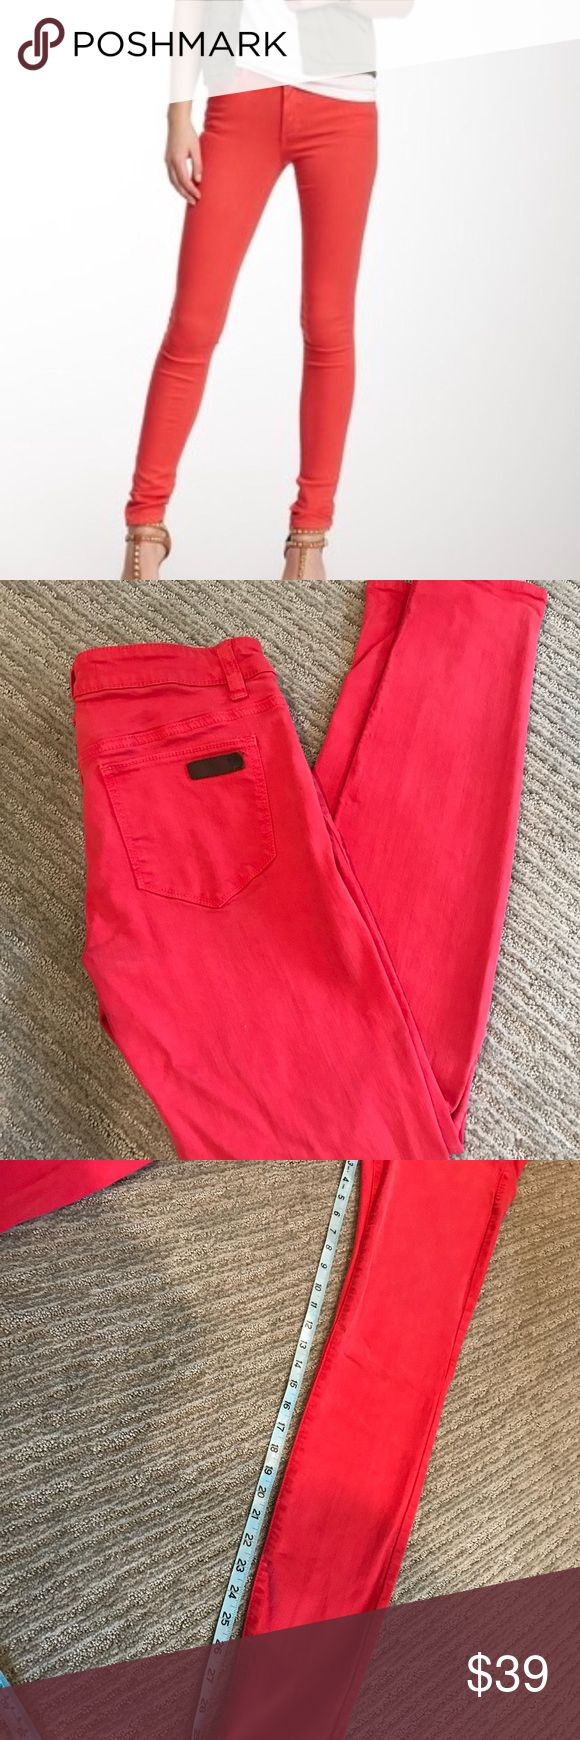 🎄Holiday Red Joe's Jeans! Size27 Skinny Joe's Jeans in red! Excellent condition and great for those festive holiday parties. Would look great with sparkly top! Joe's Jeans Jeans Skinny